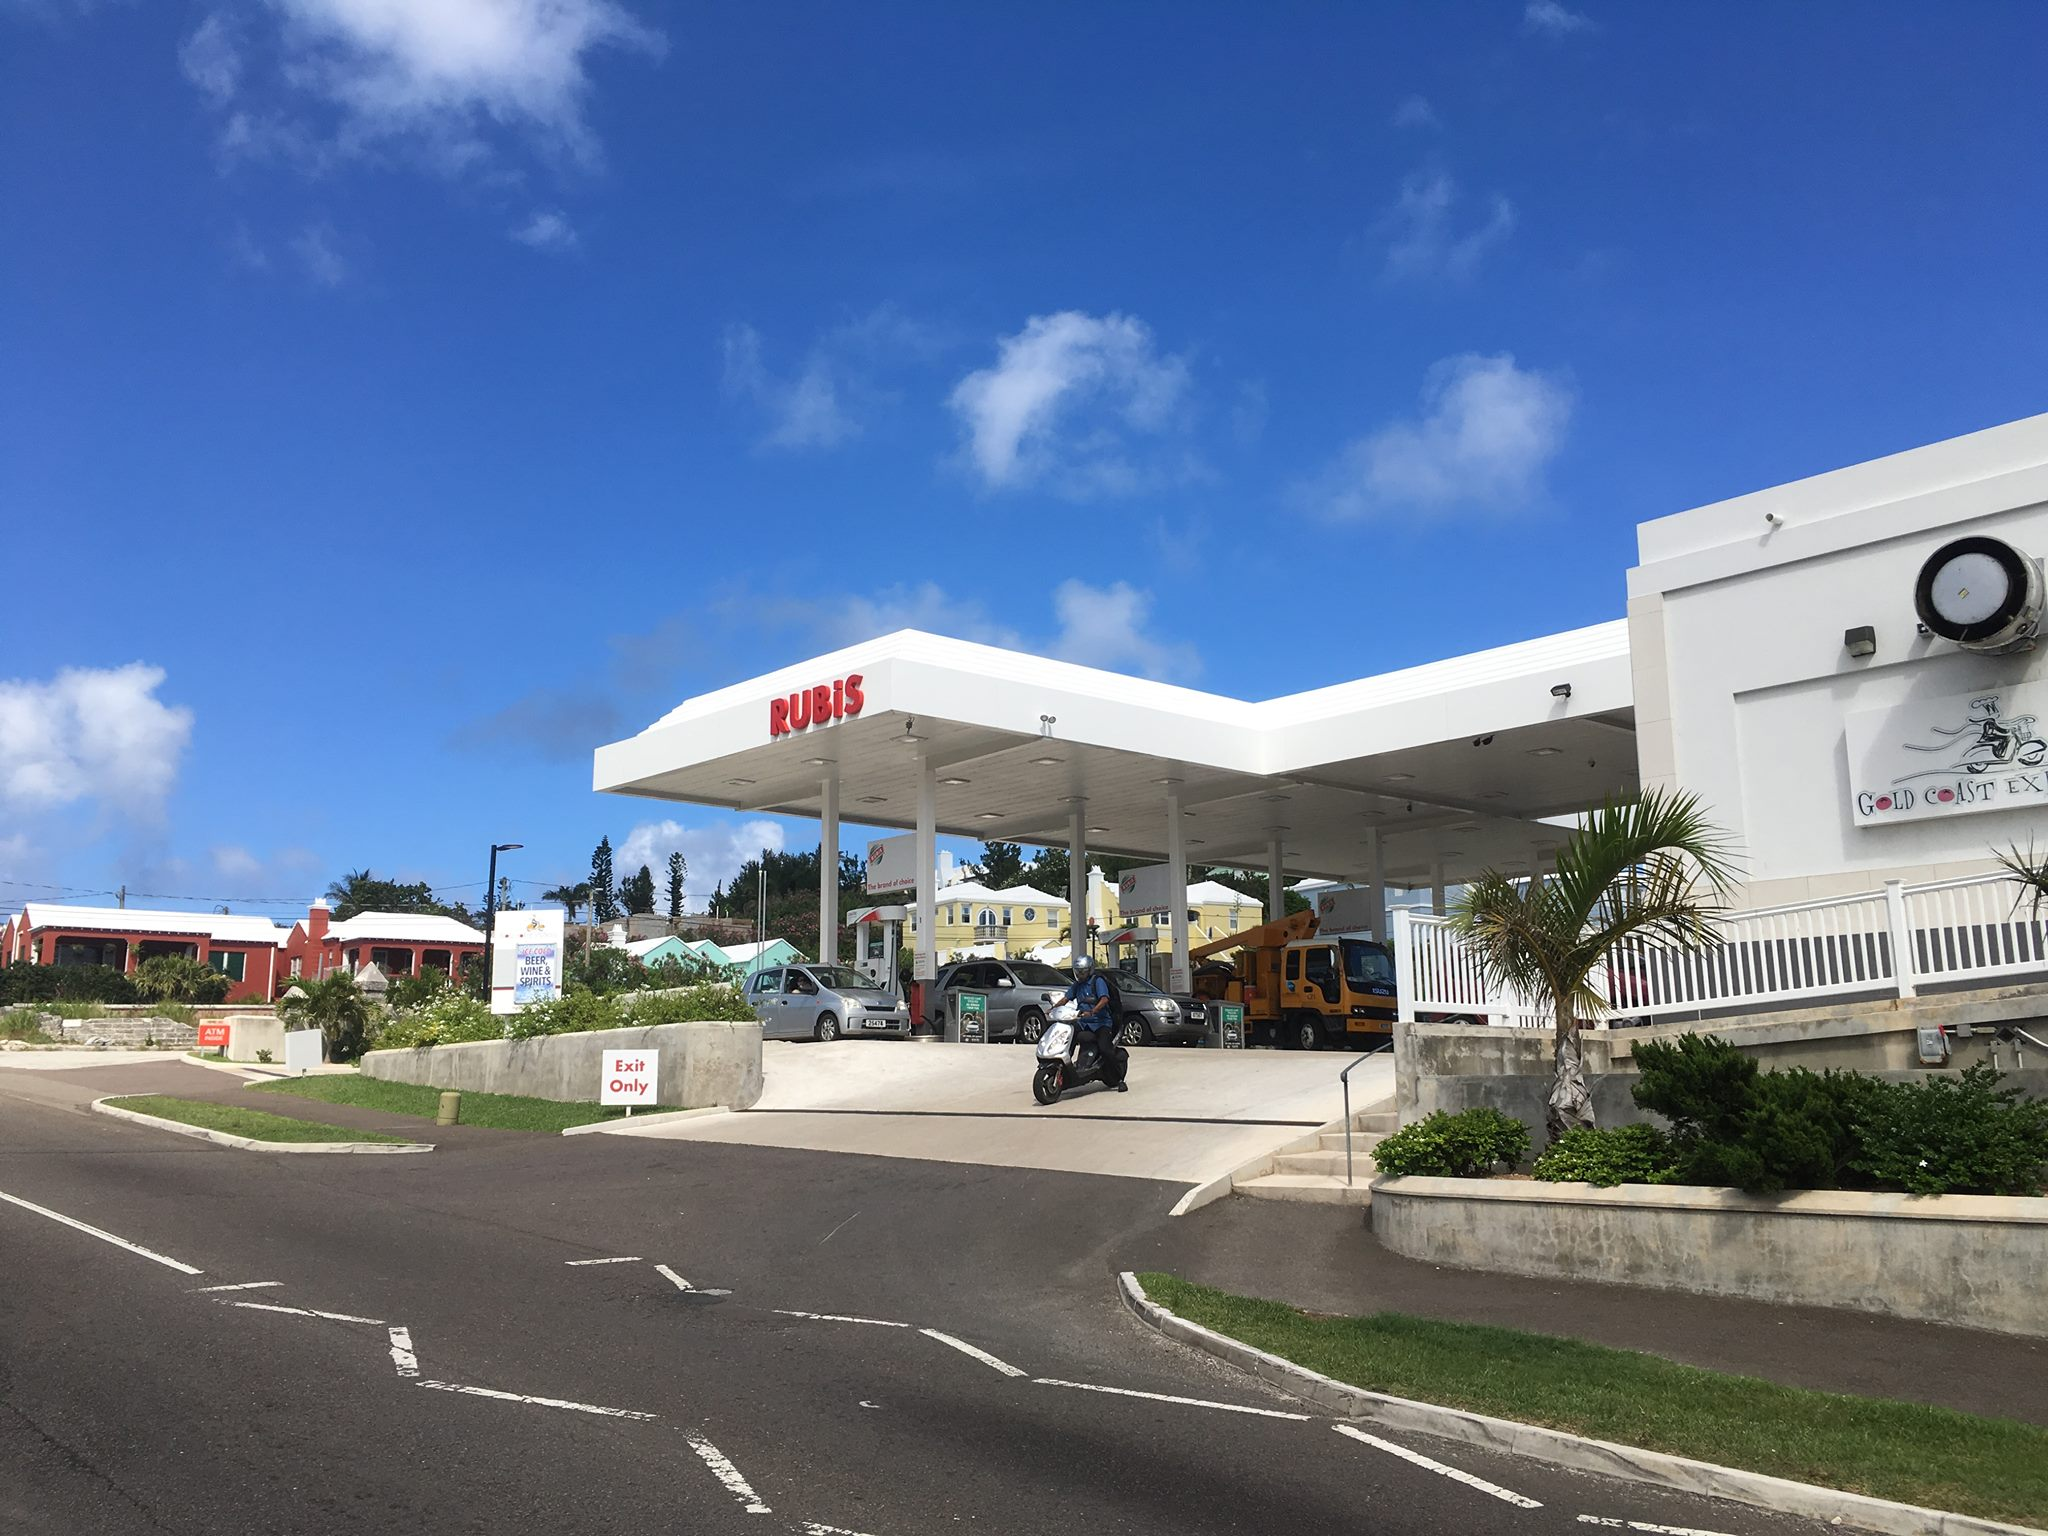 Rubis Warwick Gas Station